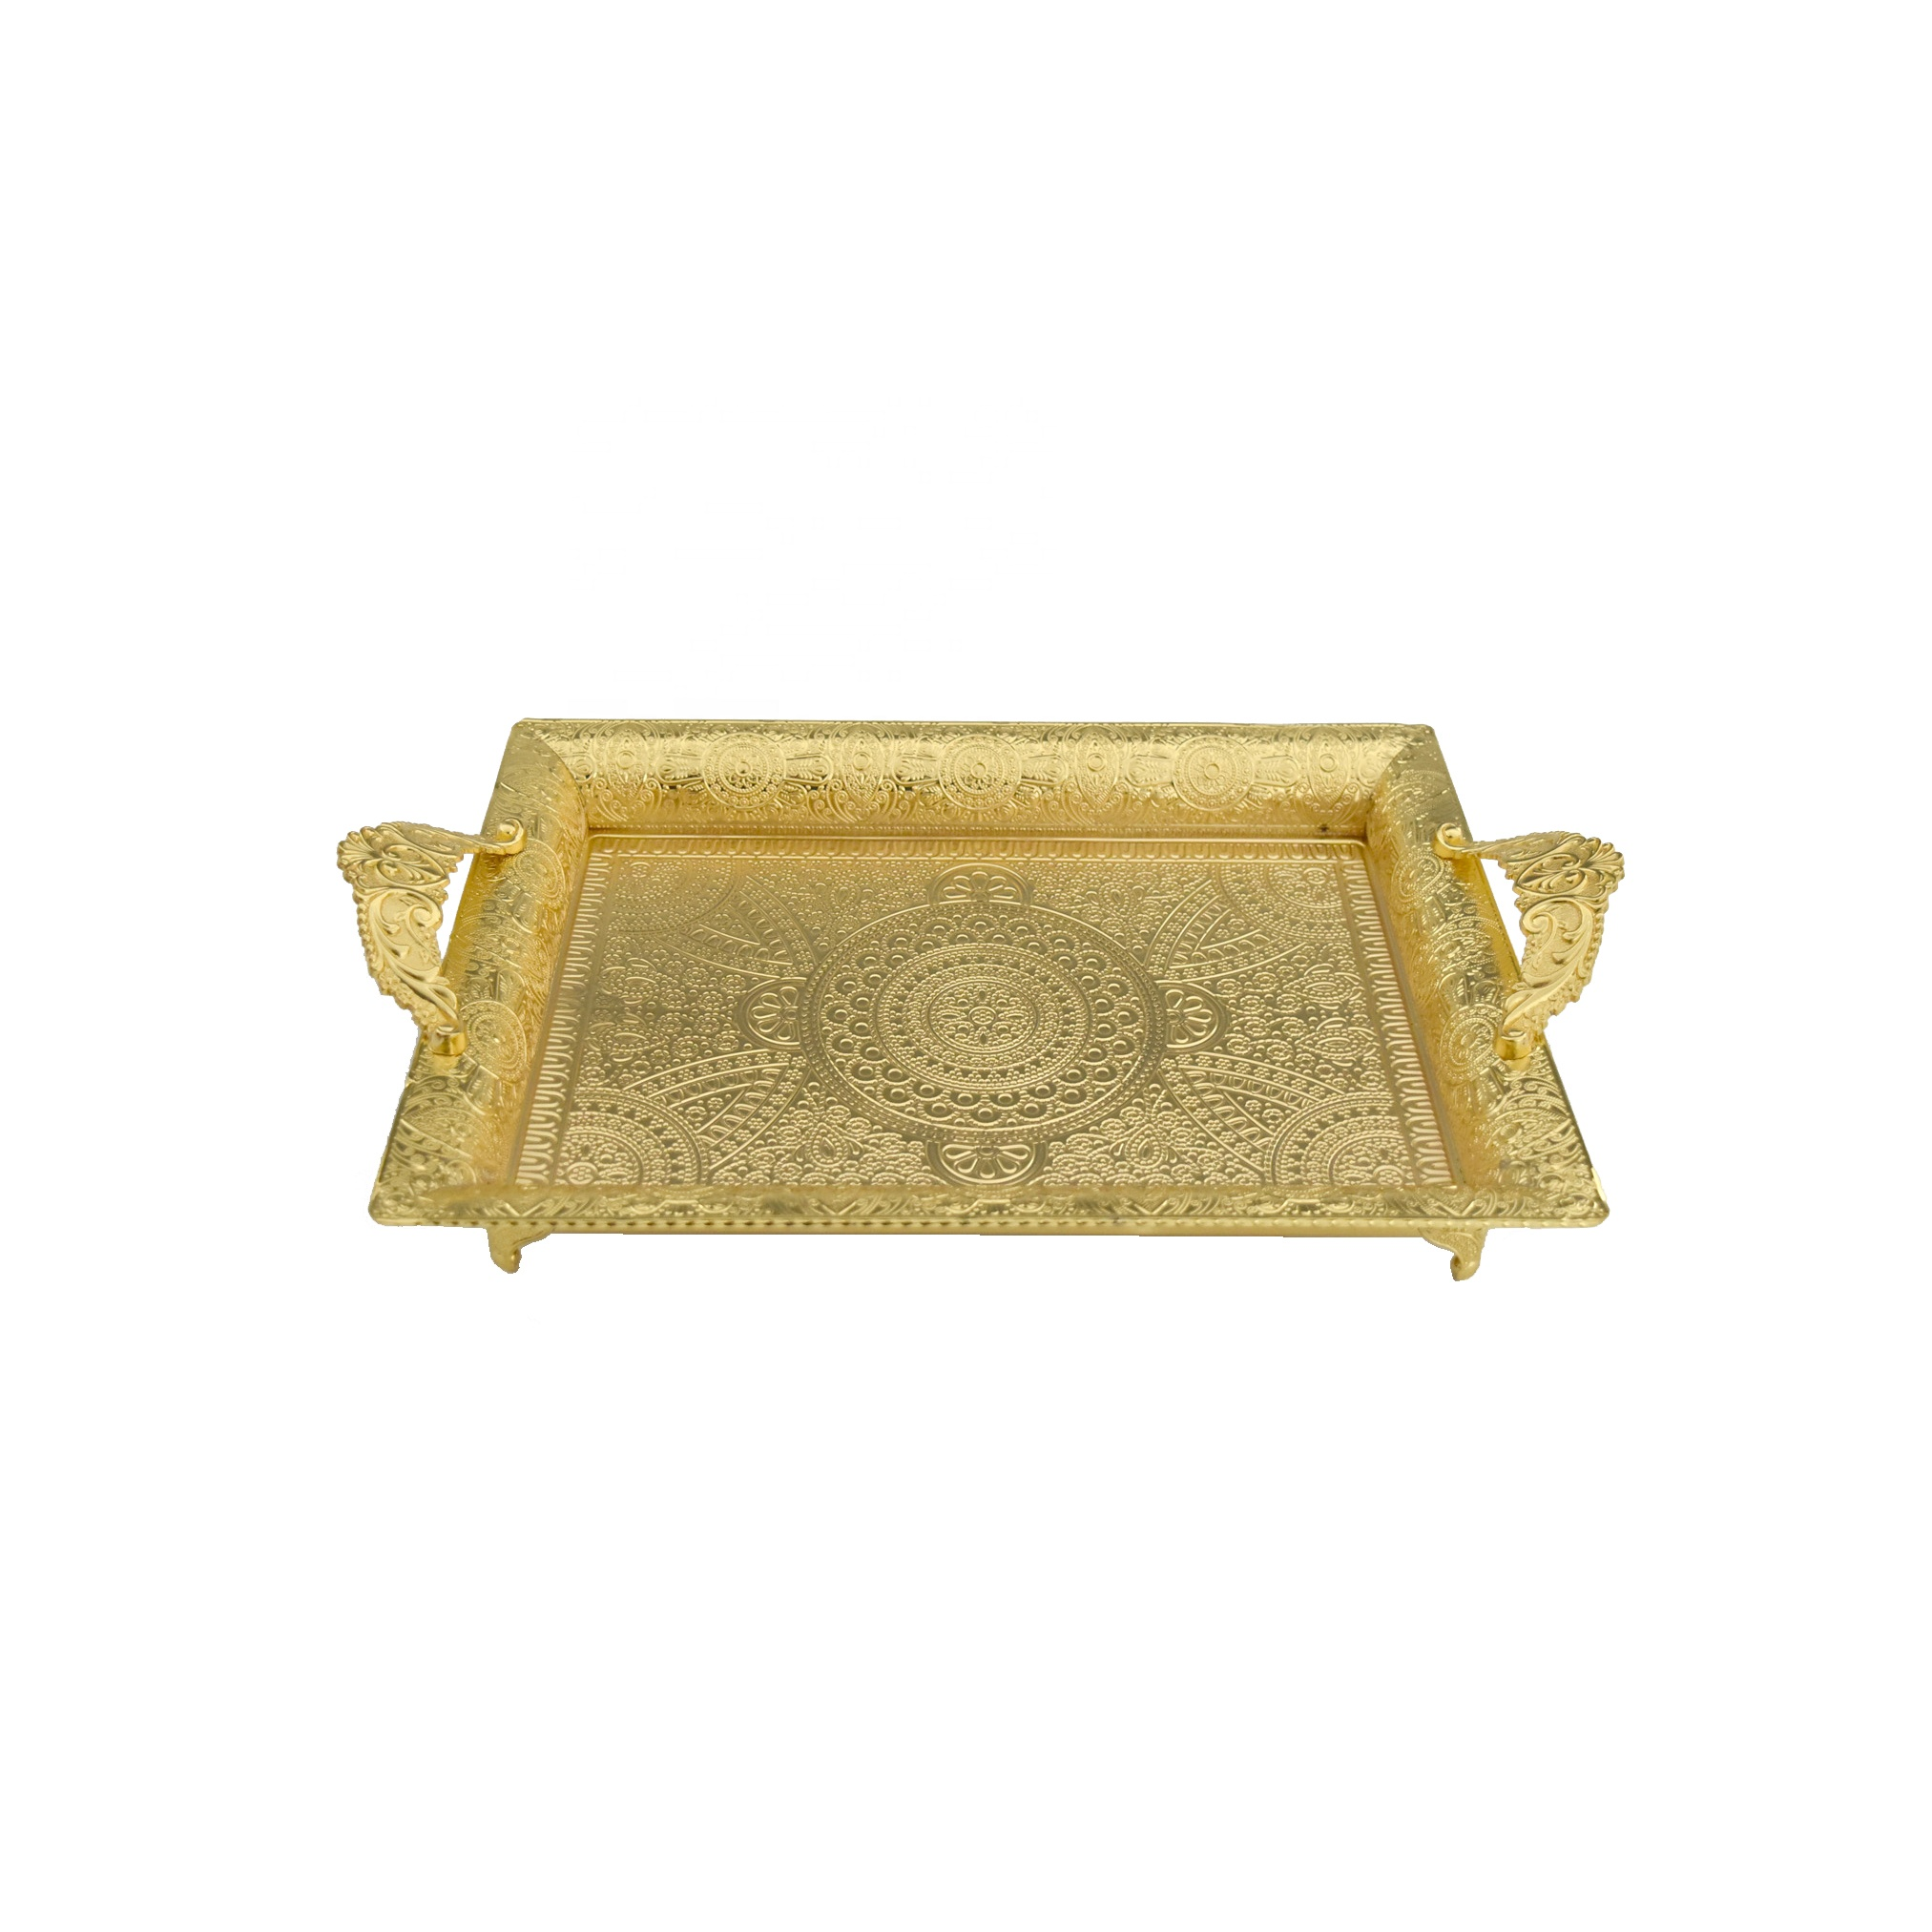 Home Party Decor Silver Gold Metal Rectangle Food Fruit Serving Tray With Handle Buy Food Fruit Serving Tray With Handle Silver Gold Metal Rectangle Cake Dessert Display Dish Home Party Decor Patterned Chocolate